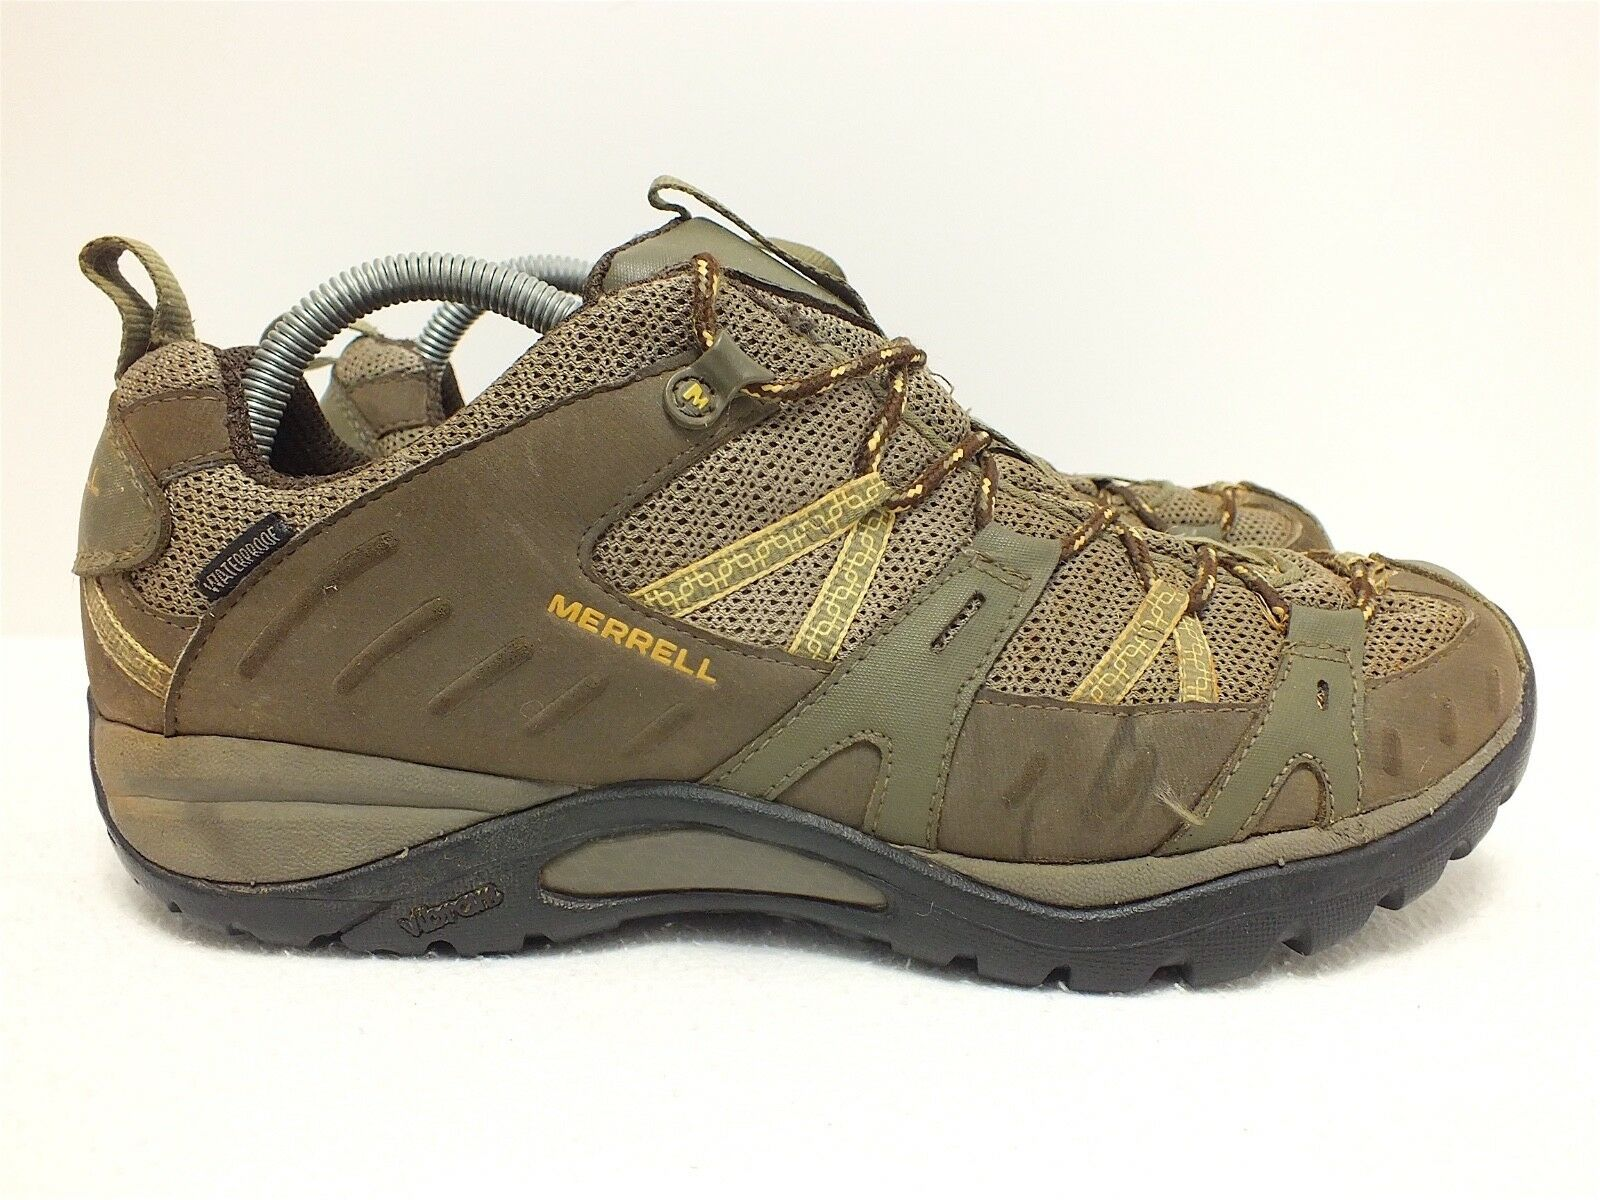 Merrell Siren Sports 2 WP Women's Trail shoes Brindle Size 11(US)